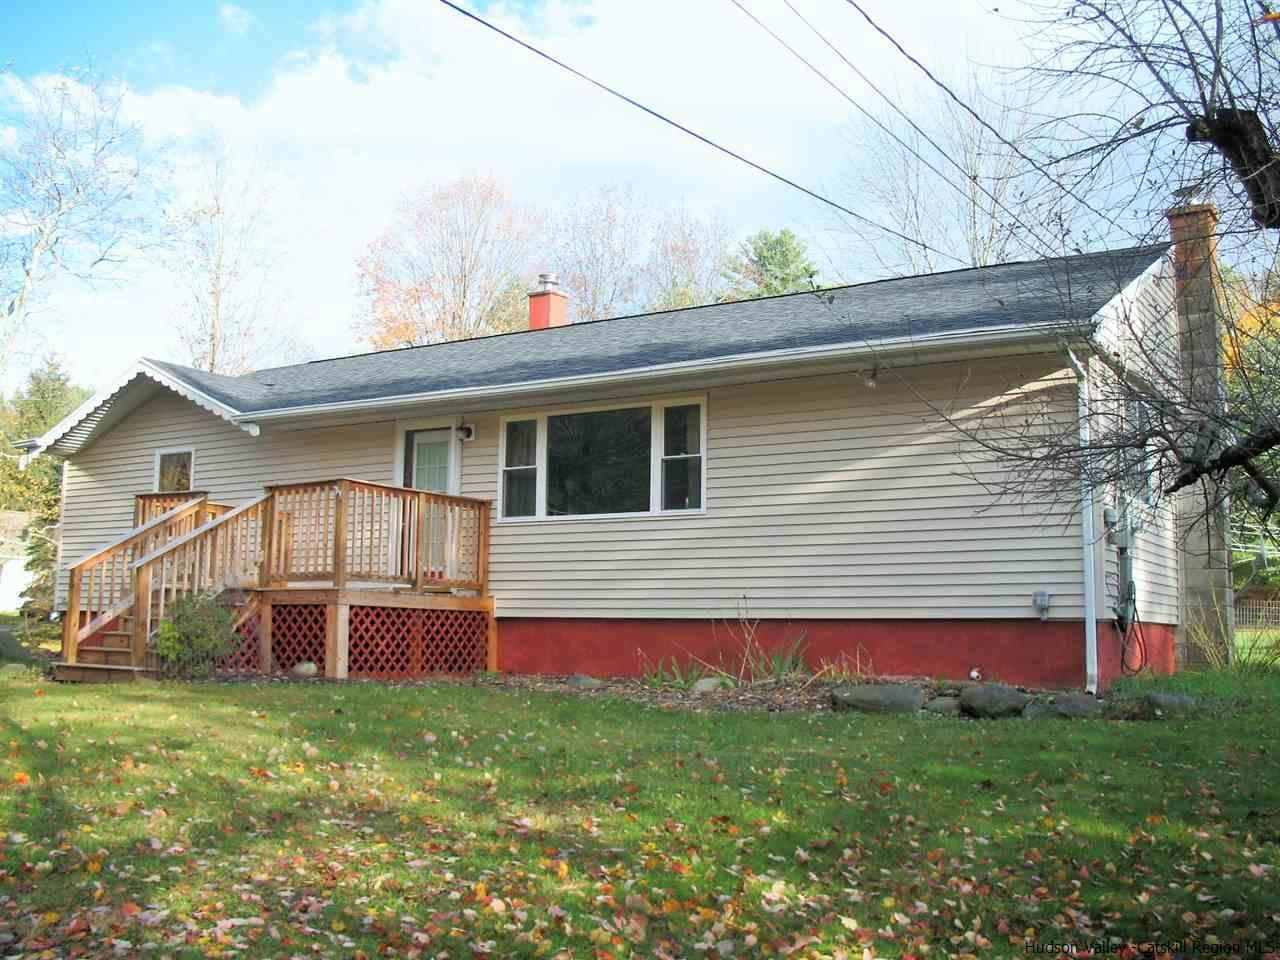 Single Family Home for Sale at 2148-2150 County Road 3 2148-2150 County Road 3 Olivebridge, New York 12461 United States